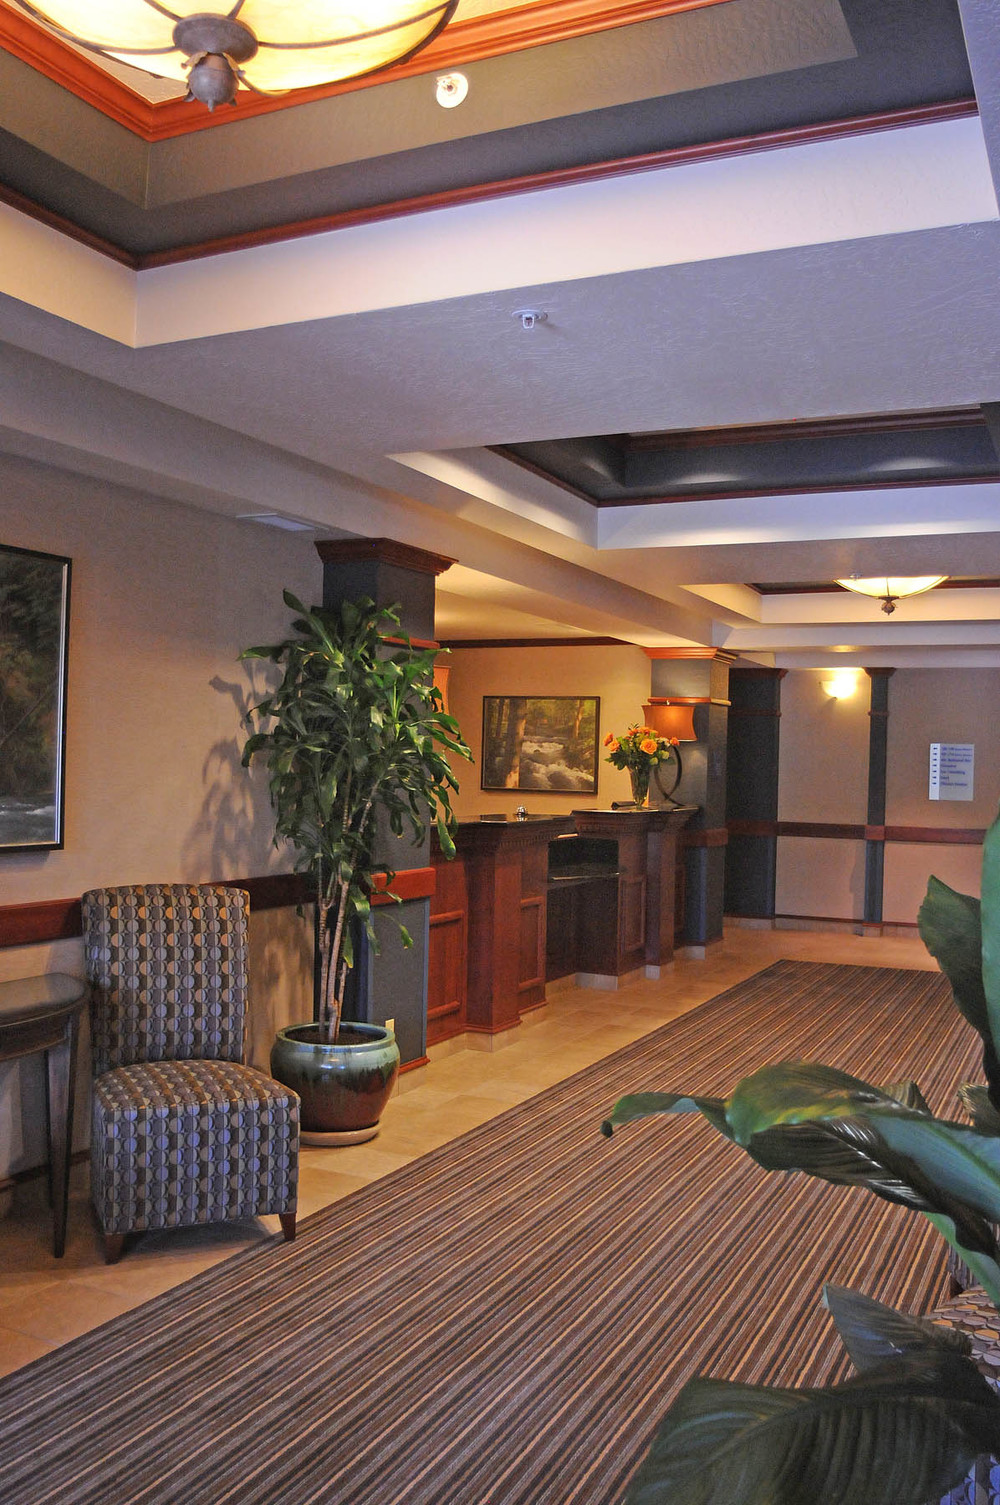 HIE Holiday Inn Lobby vertweb.jpg